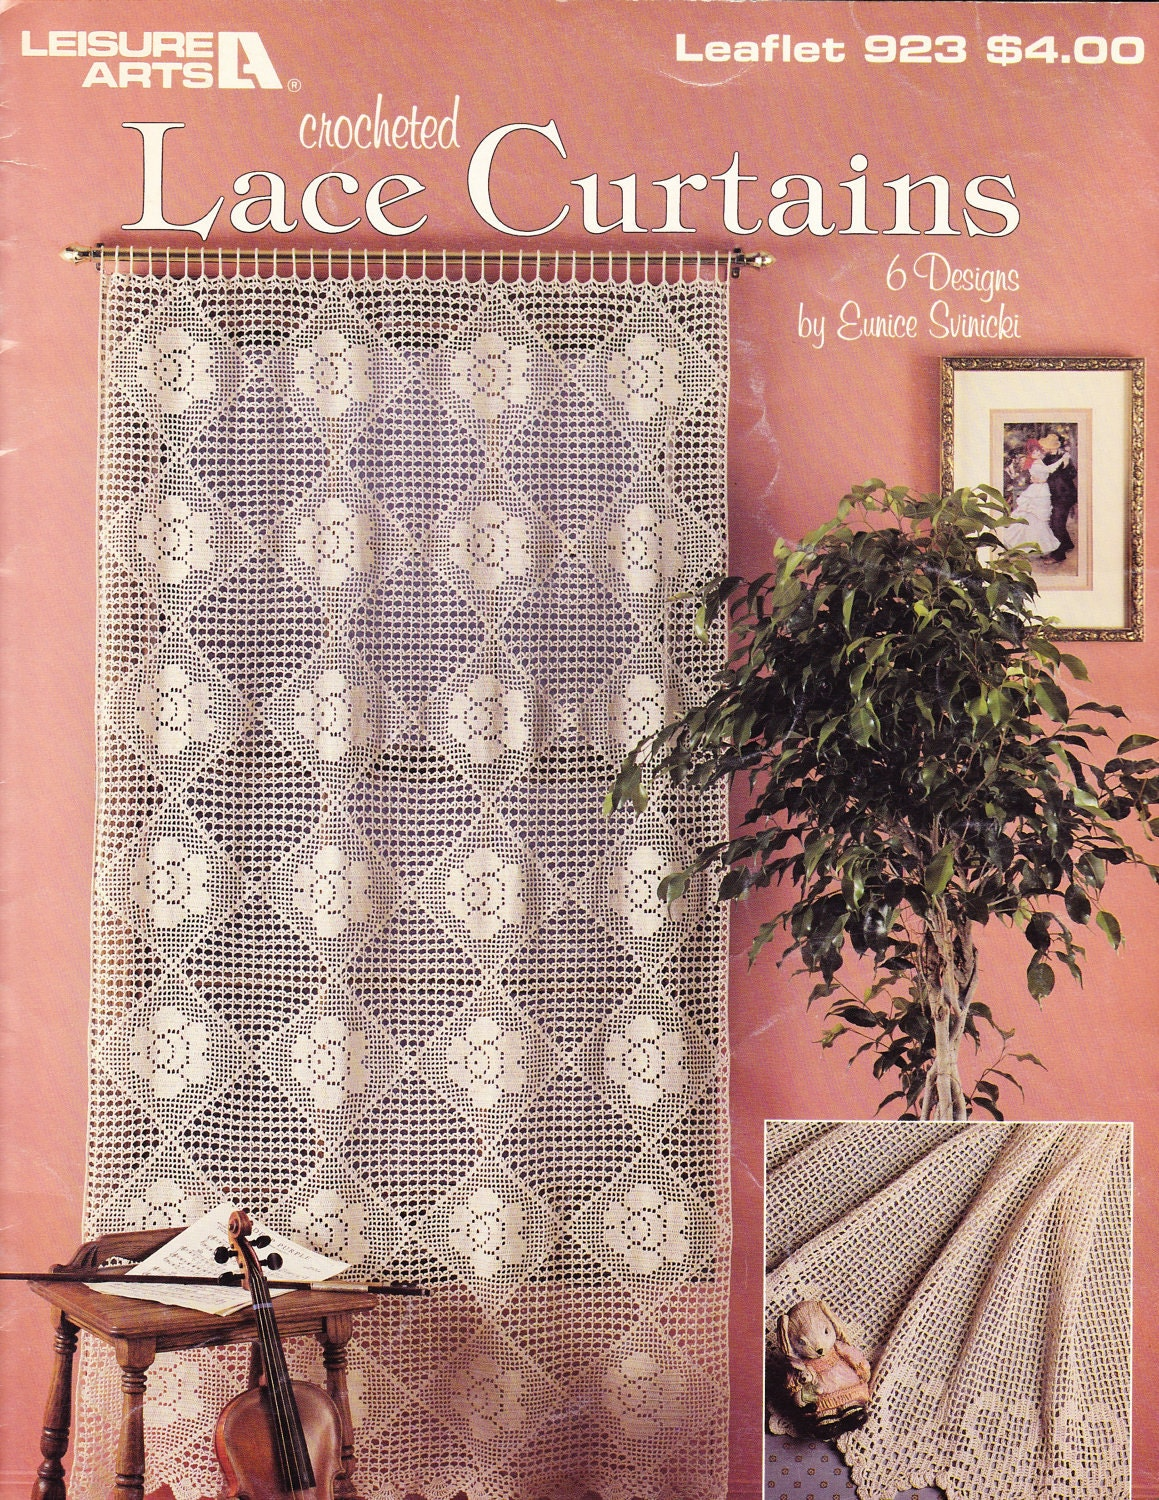 Crochet Lace Book Cover : Crocheted lace curtains pattern book